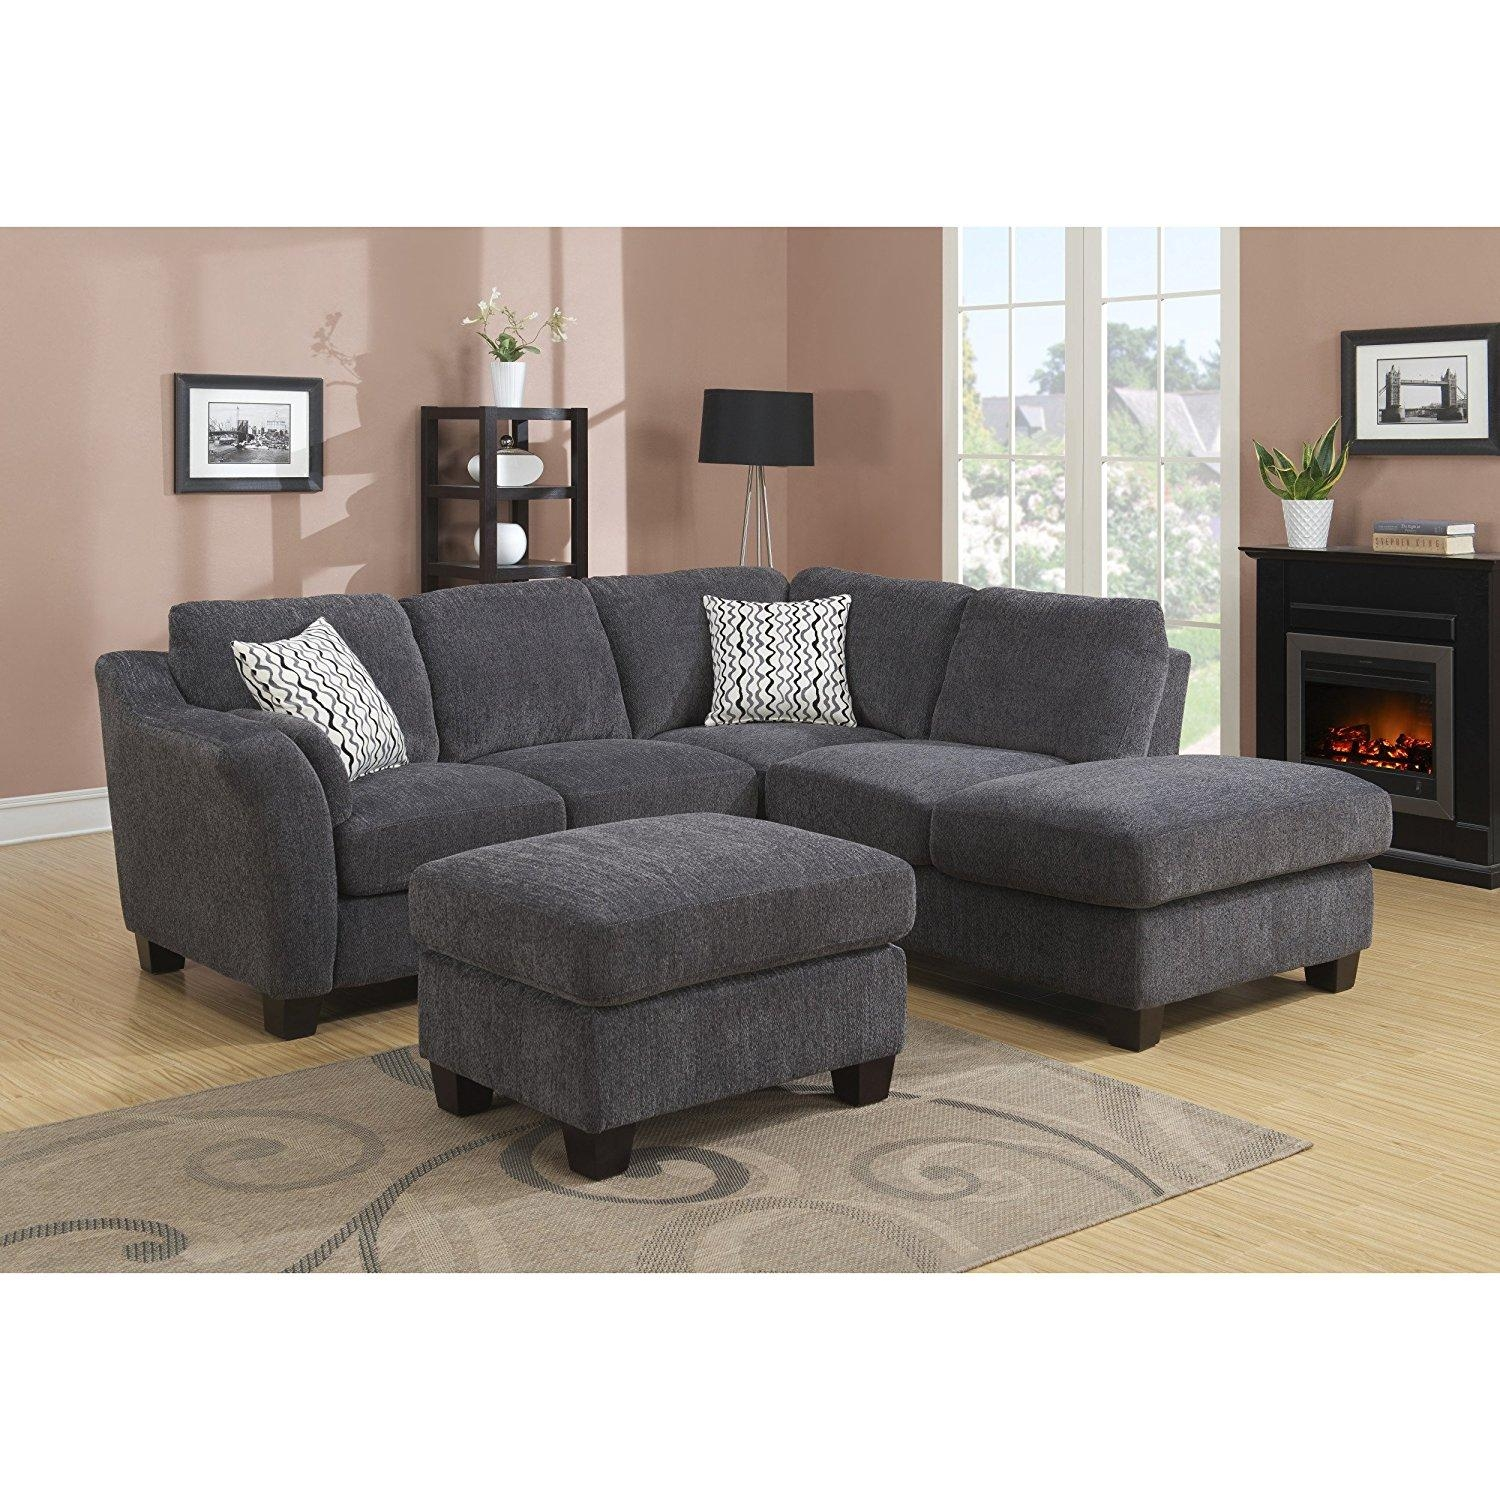 Furniture: Leather Grey Sectional Costco With Gray Rug And Wall Inside Costco Wall Art (View 18 of 20)